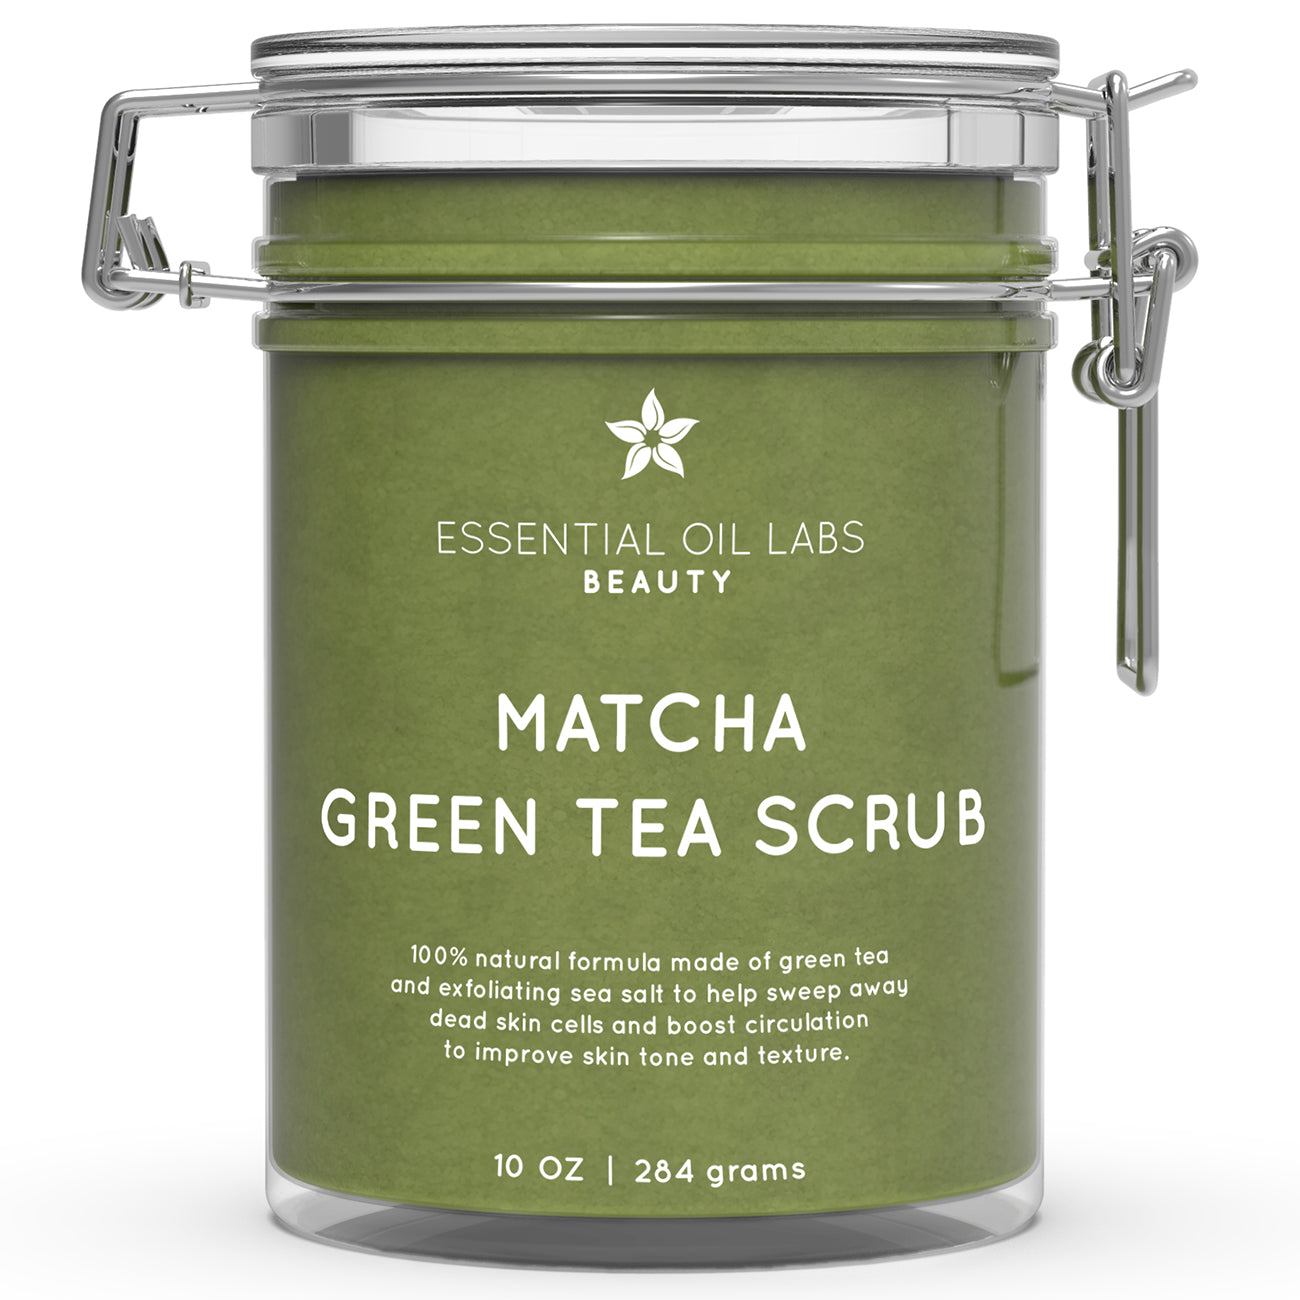 Matcha Green Tea Scrub, 10 oz.